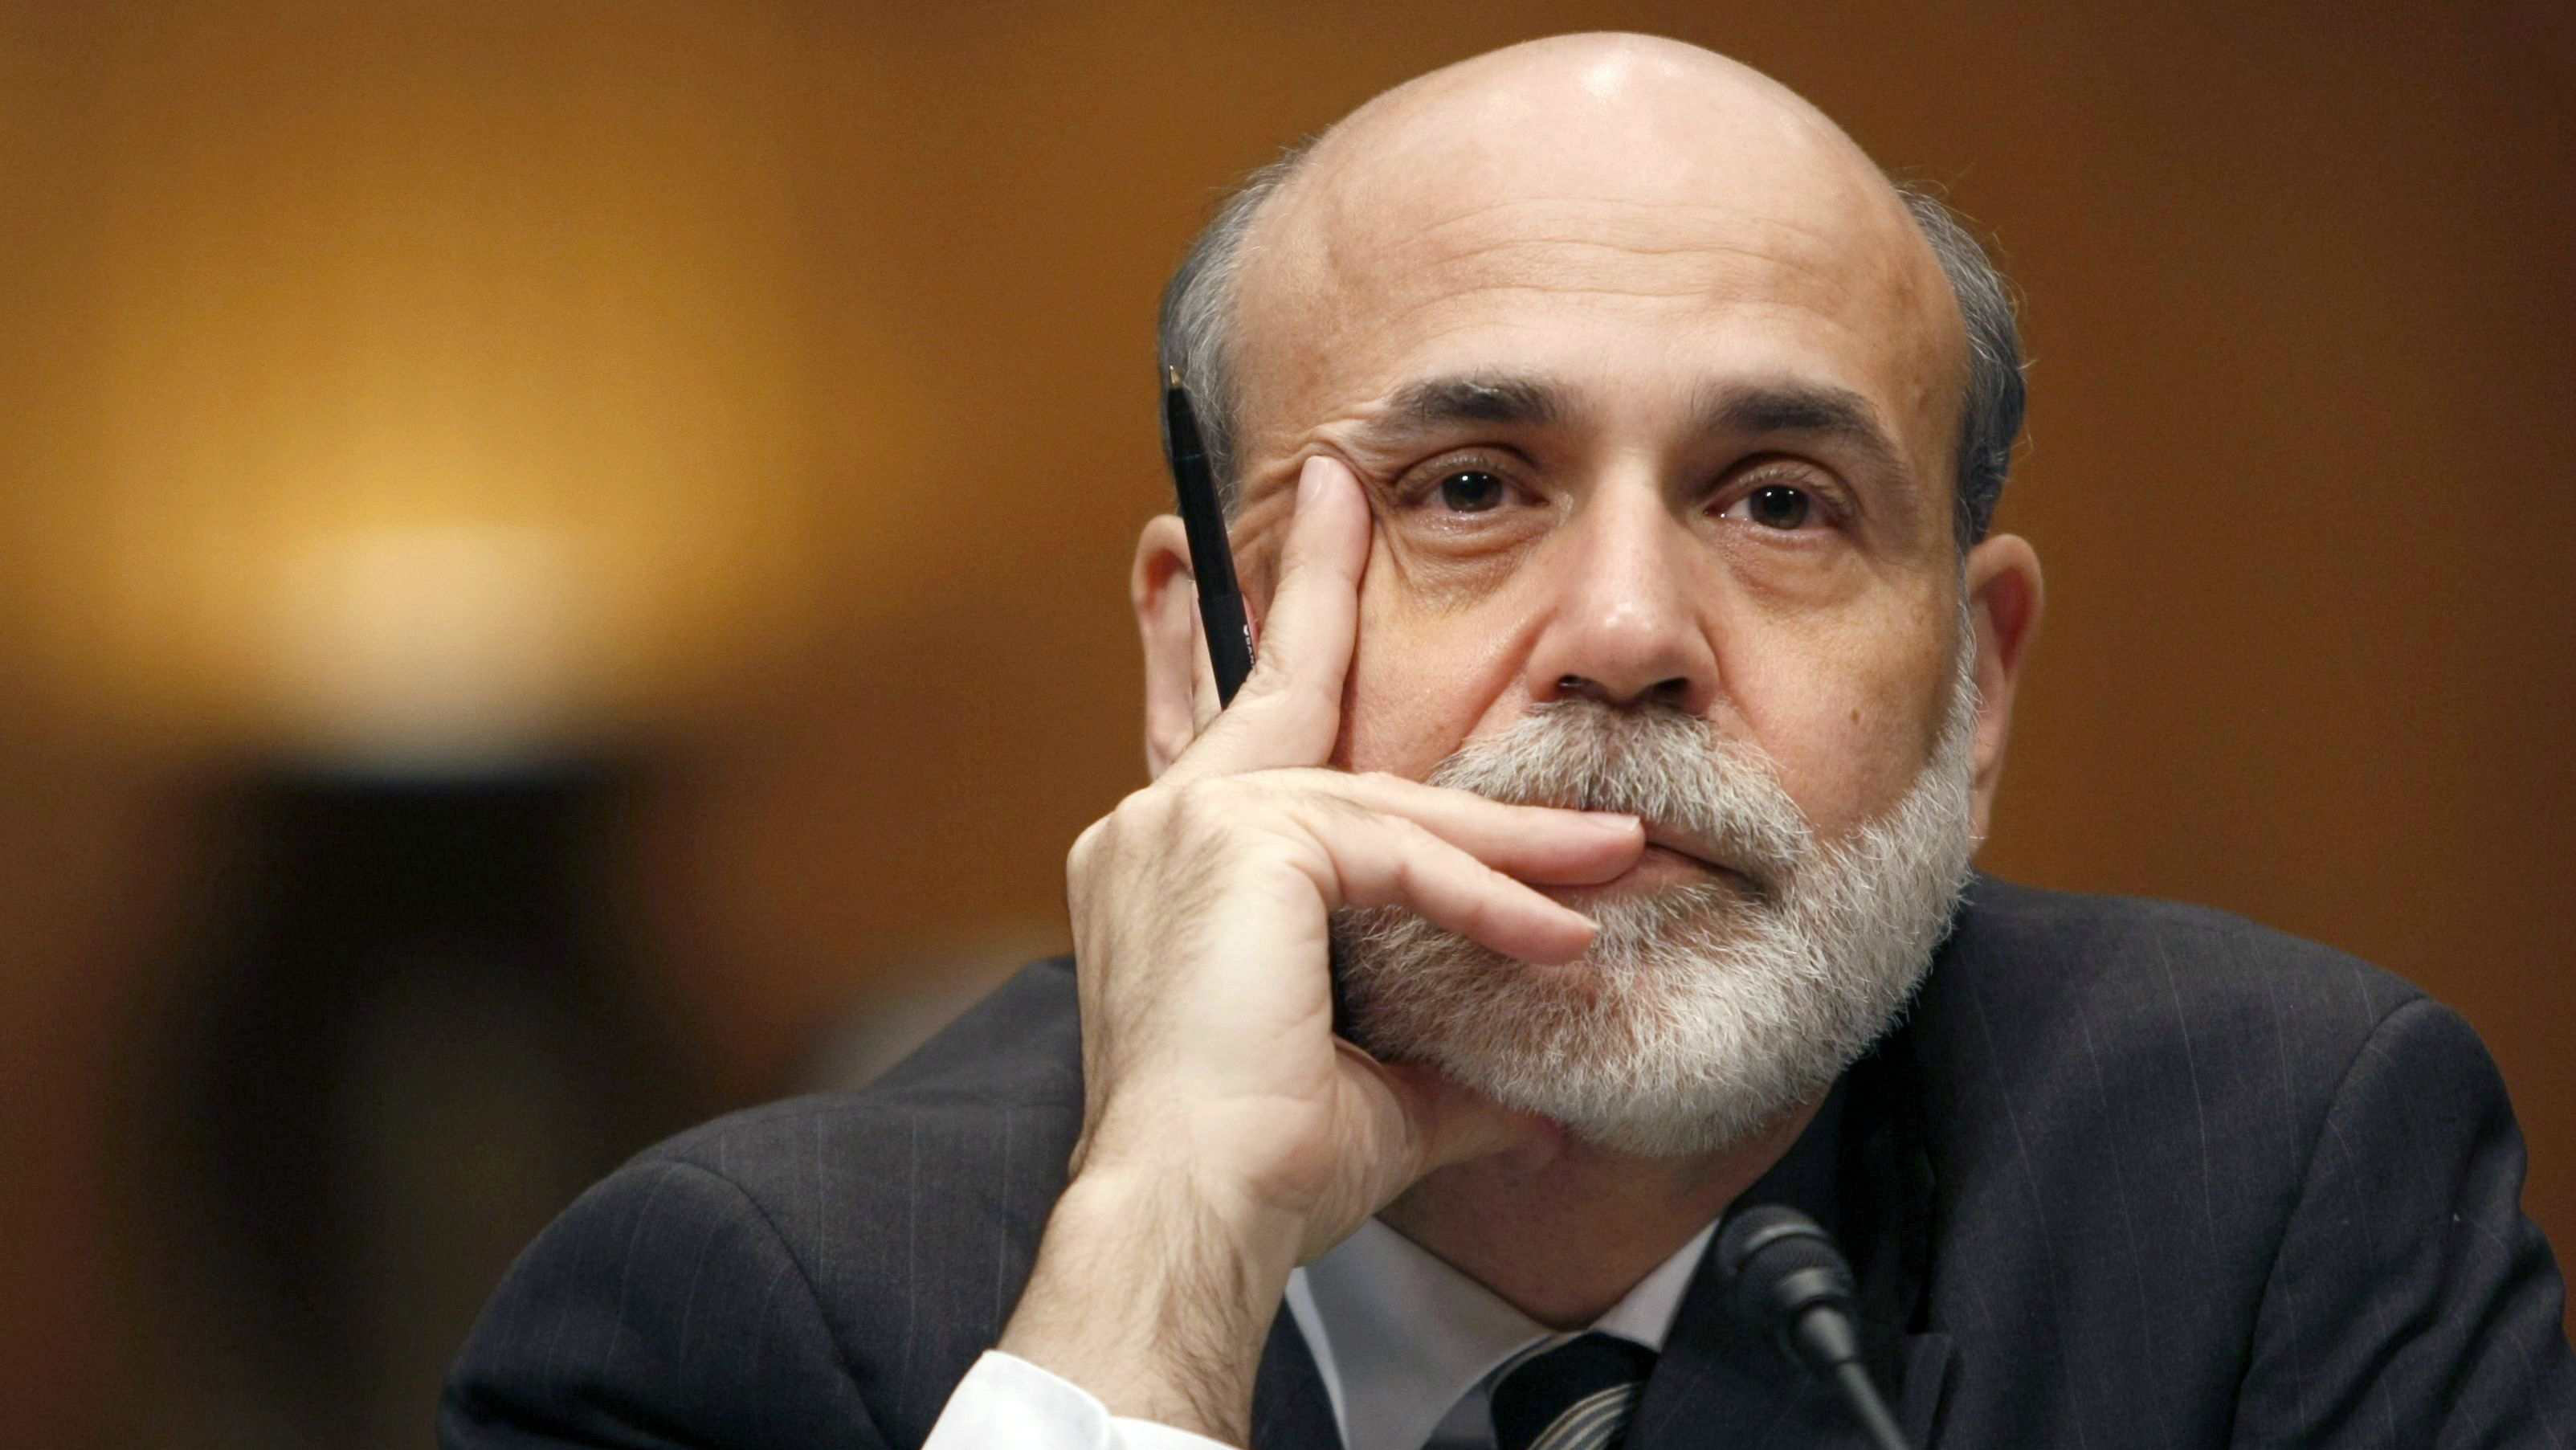 Ben Bernanke on bubbles, bitcoin, and why he's not a Republican ...